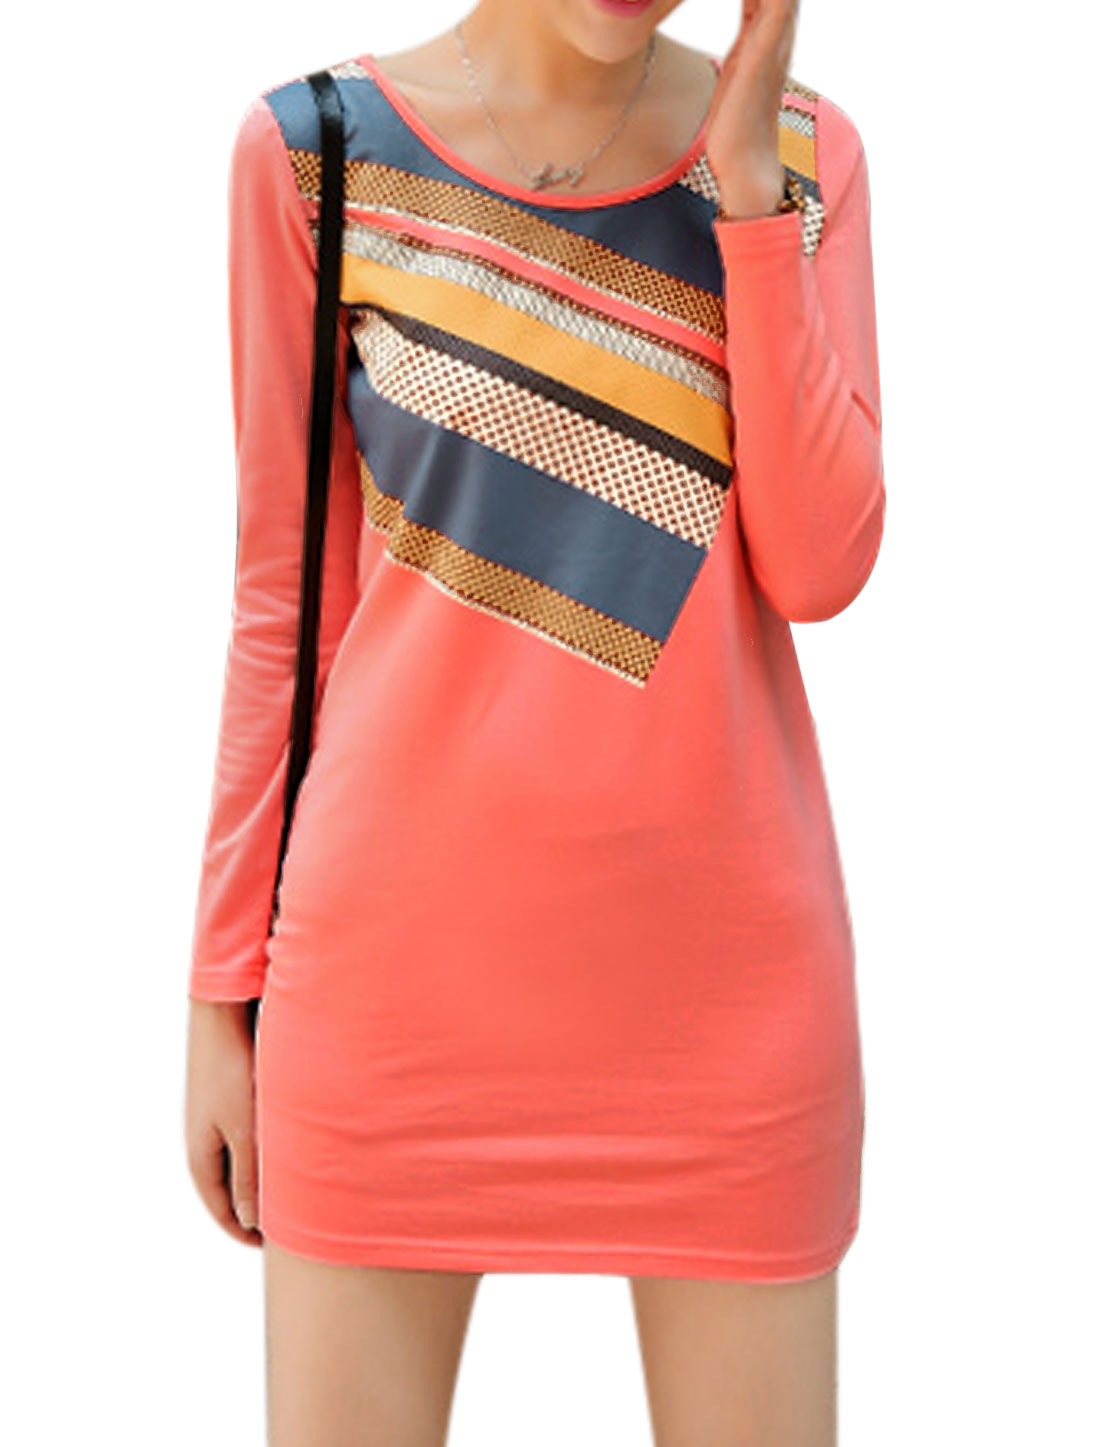 Lady Soft Long Sleeves Dots Stripes Print Casual Dress Coral Pink M